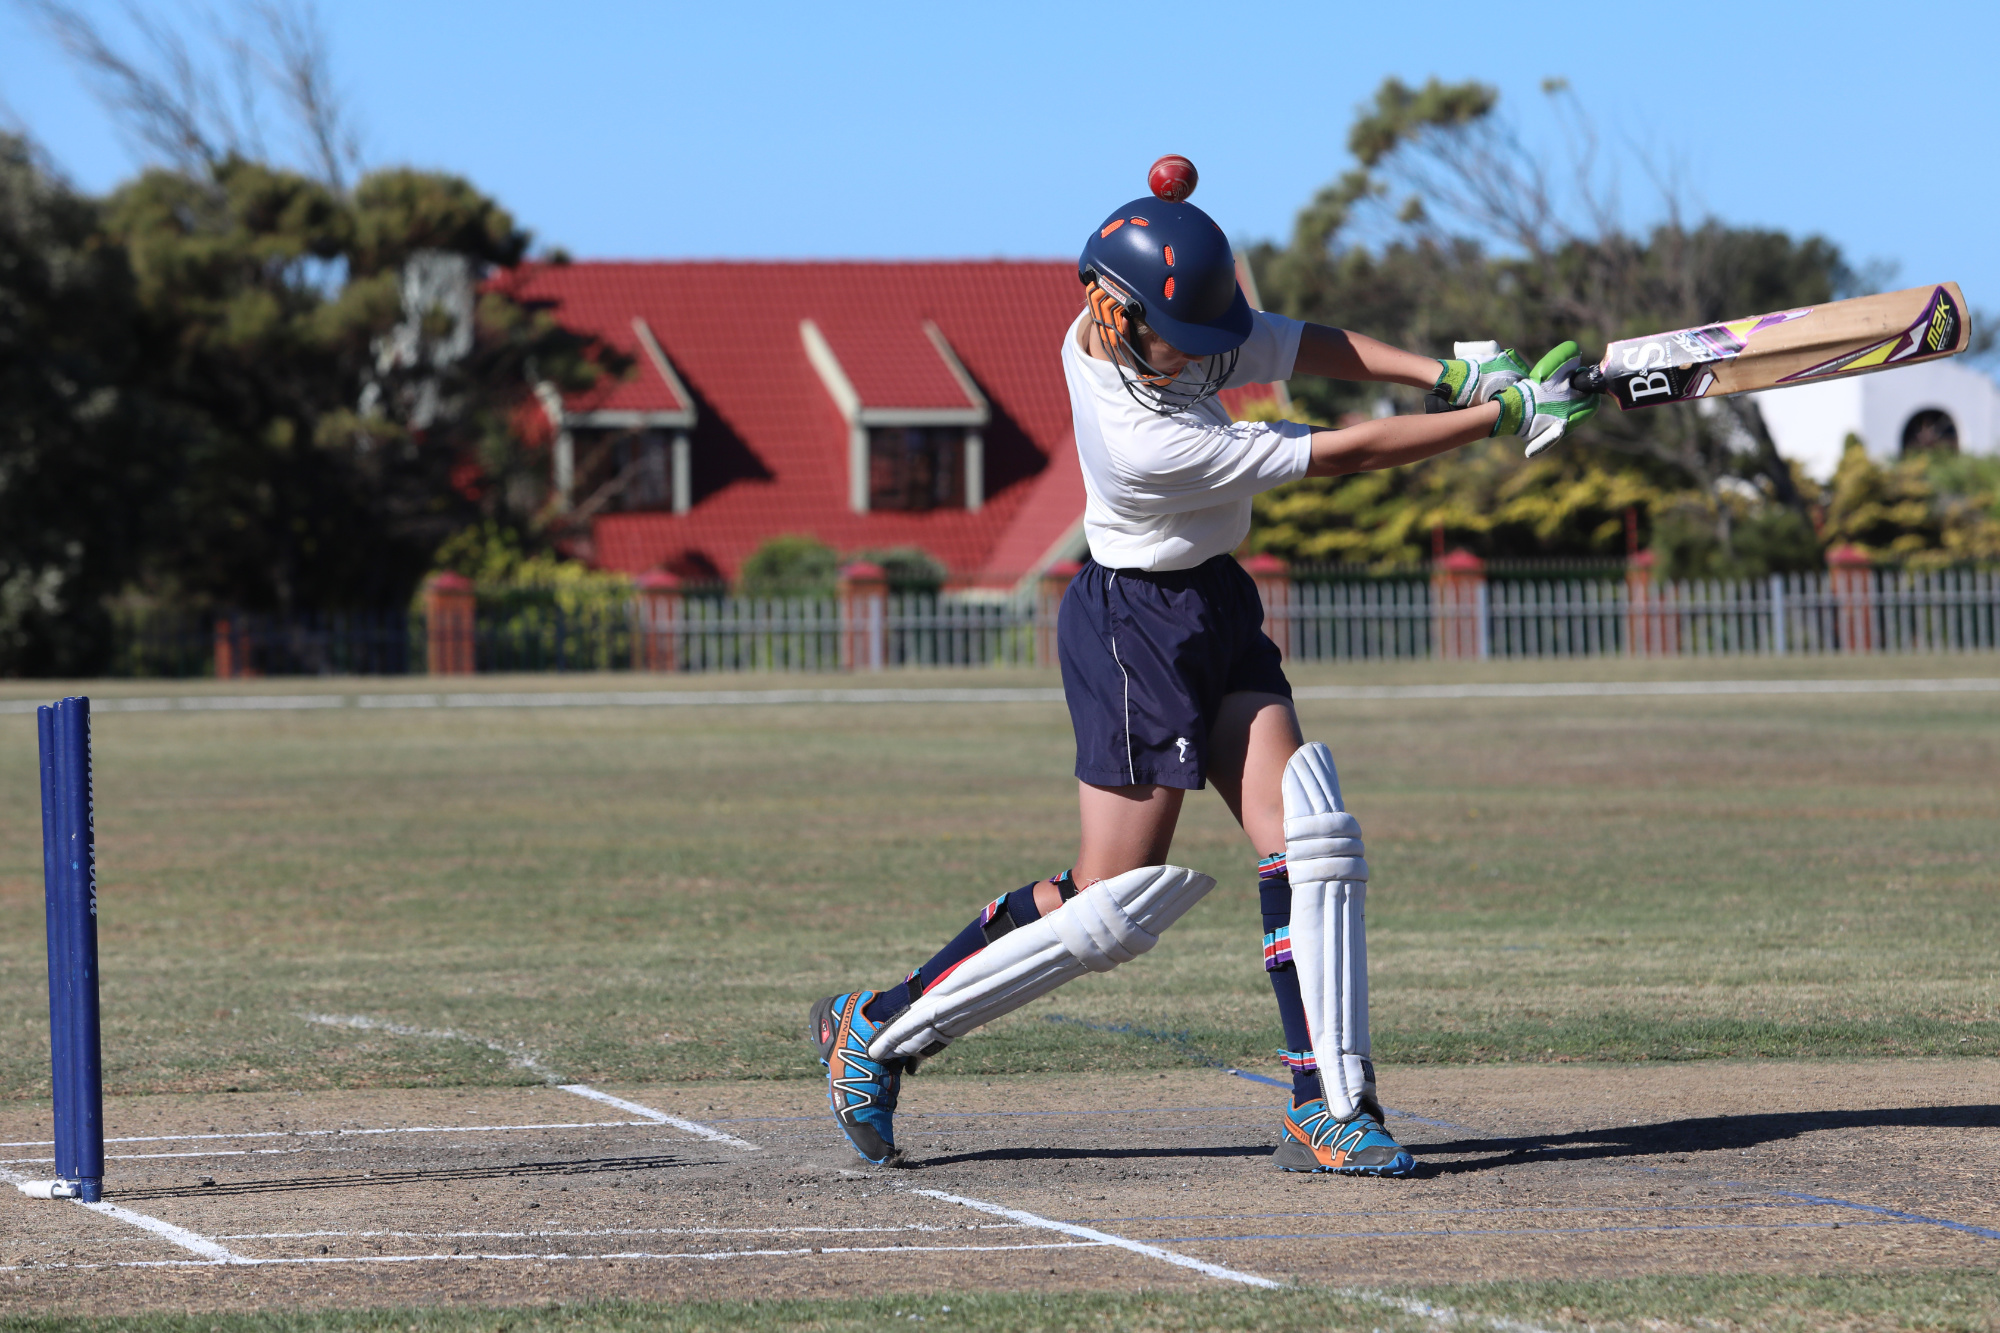 Summerwood Primary Sport Cricket vs Pare